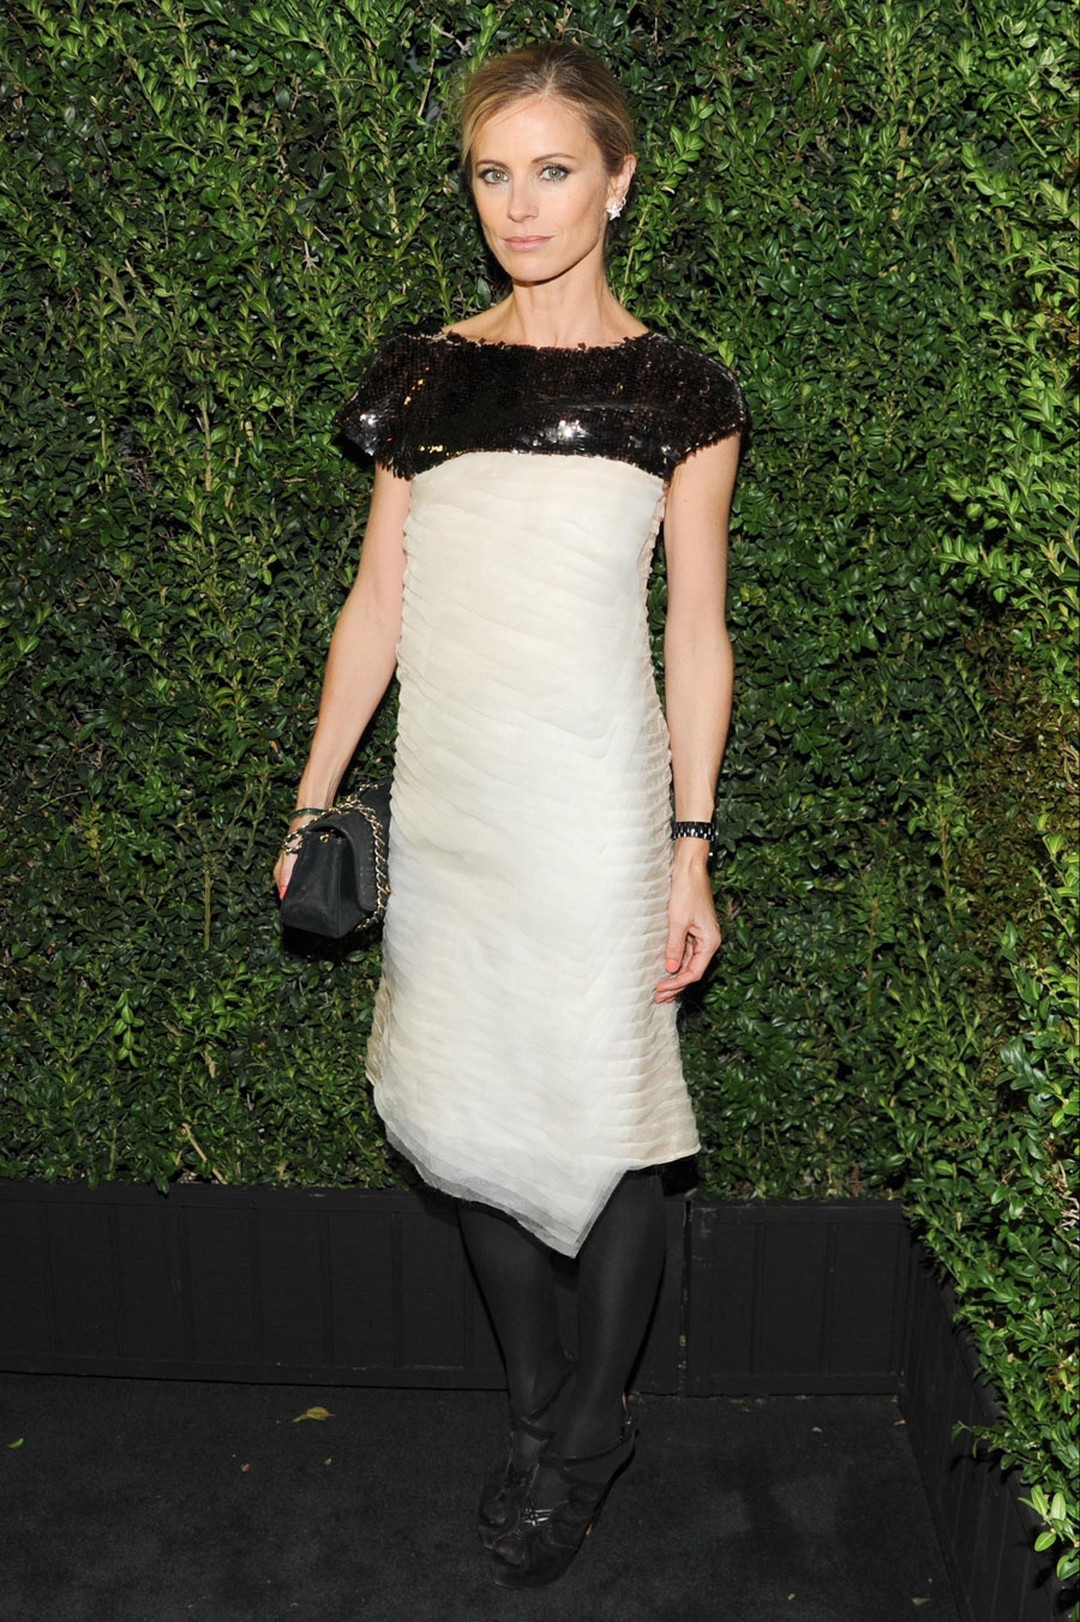 Laura-Bailey-Chanel-and-Charles-Finch-Oscars-Dinner-23-fevrier-2013.jpg